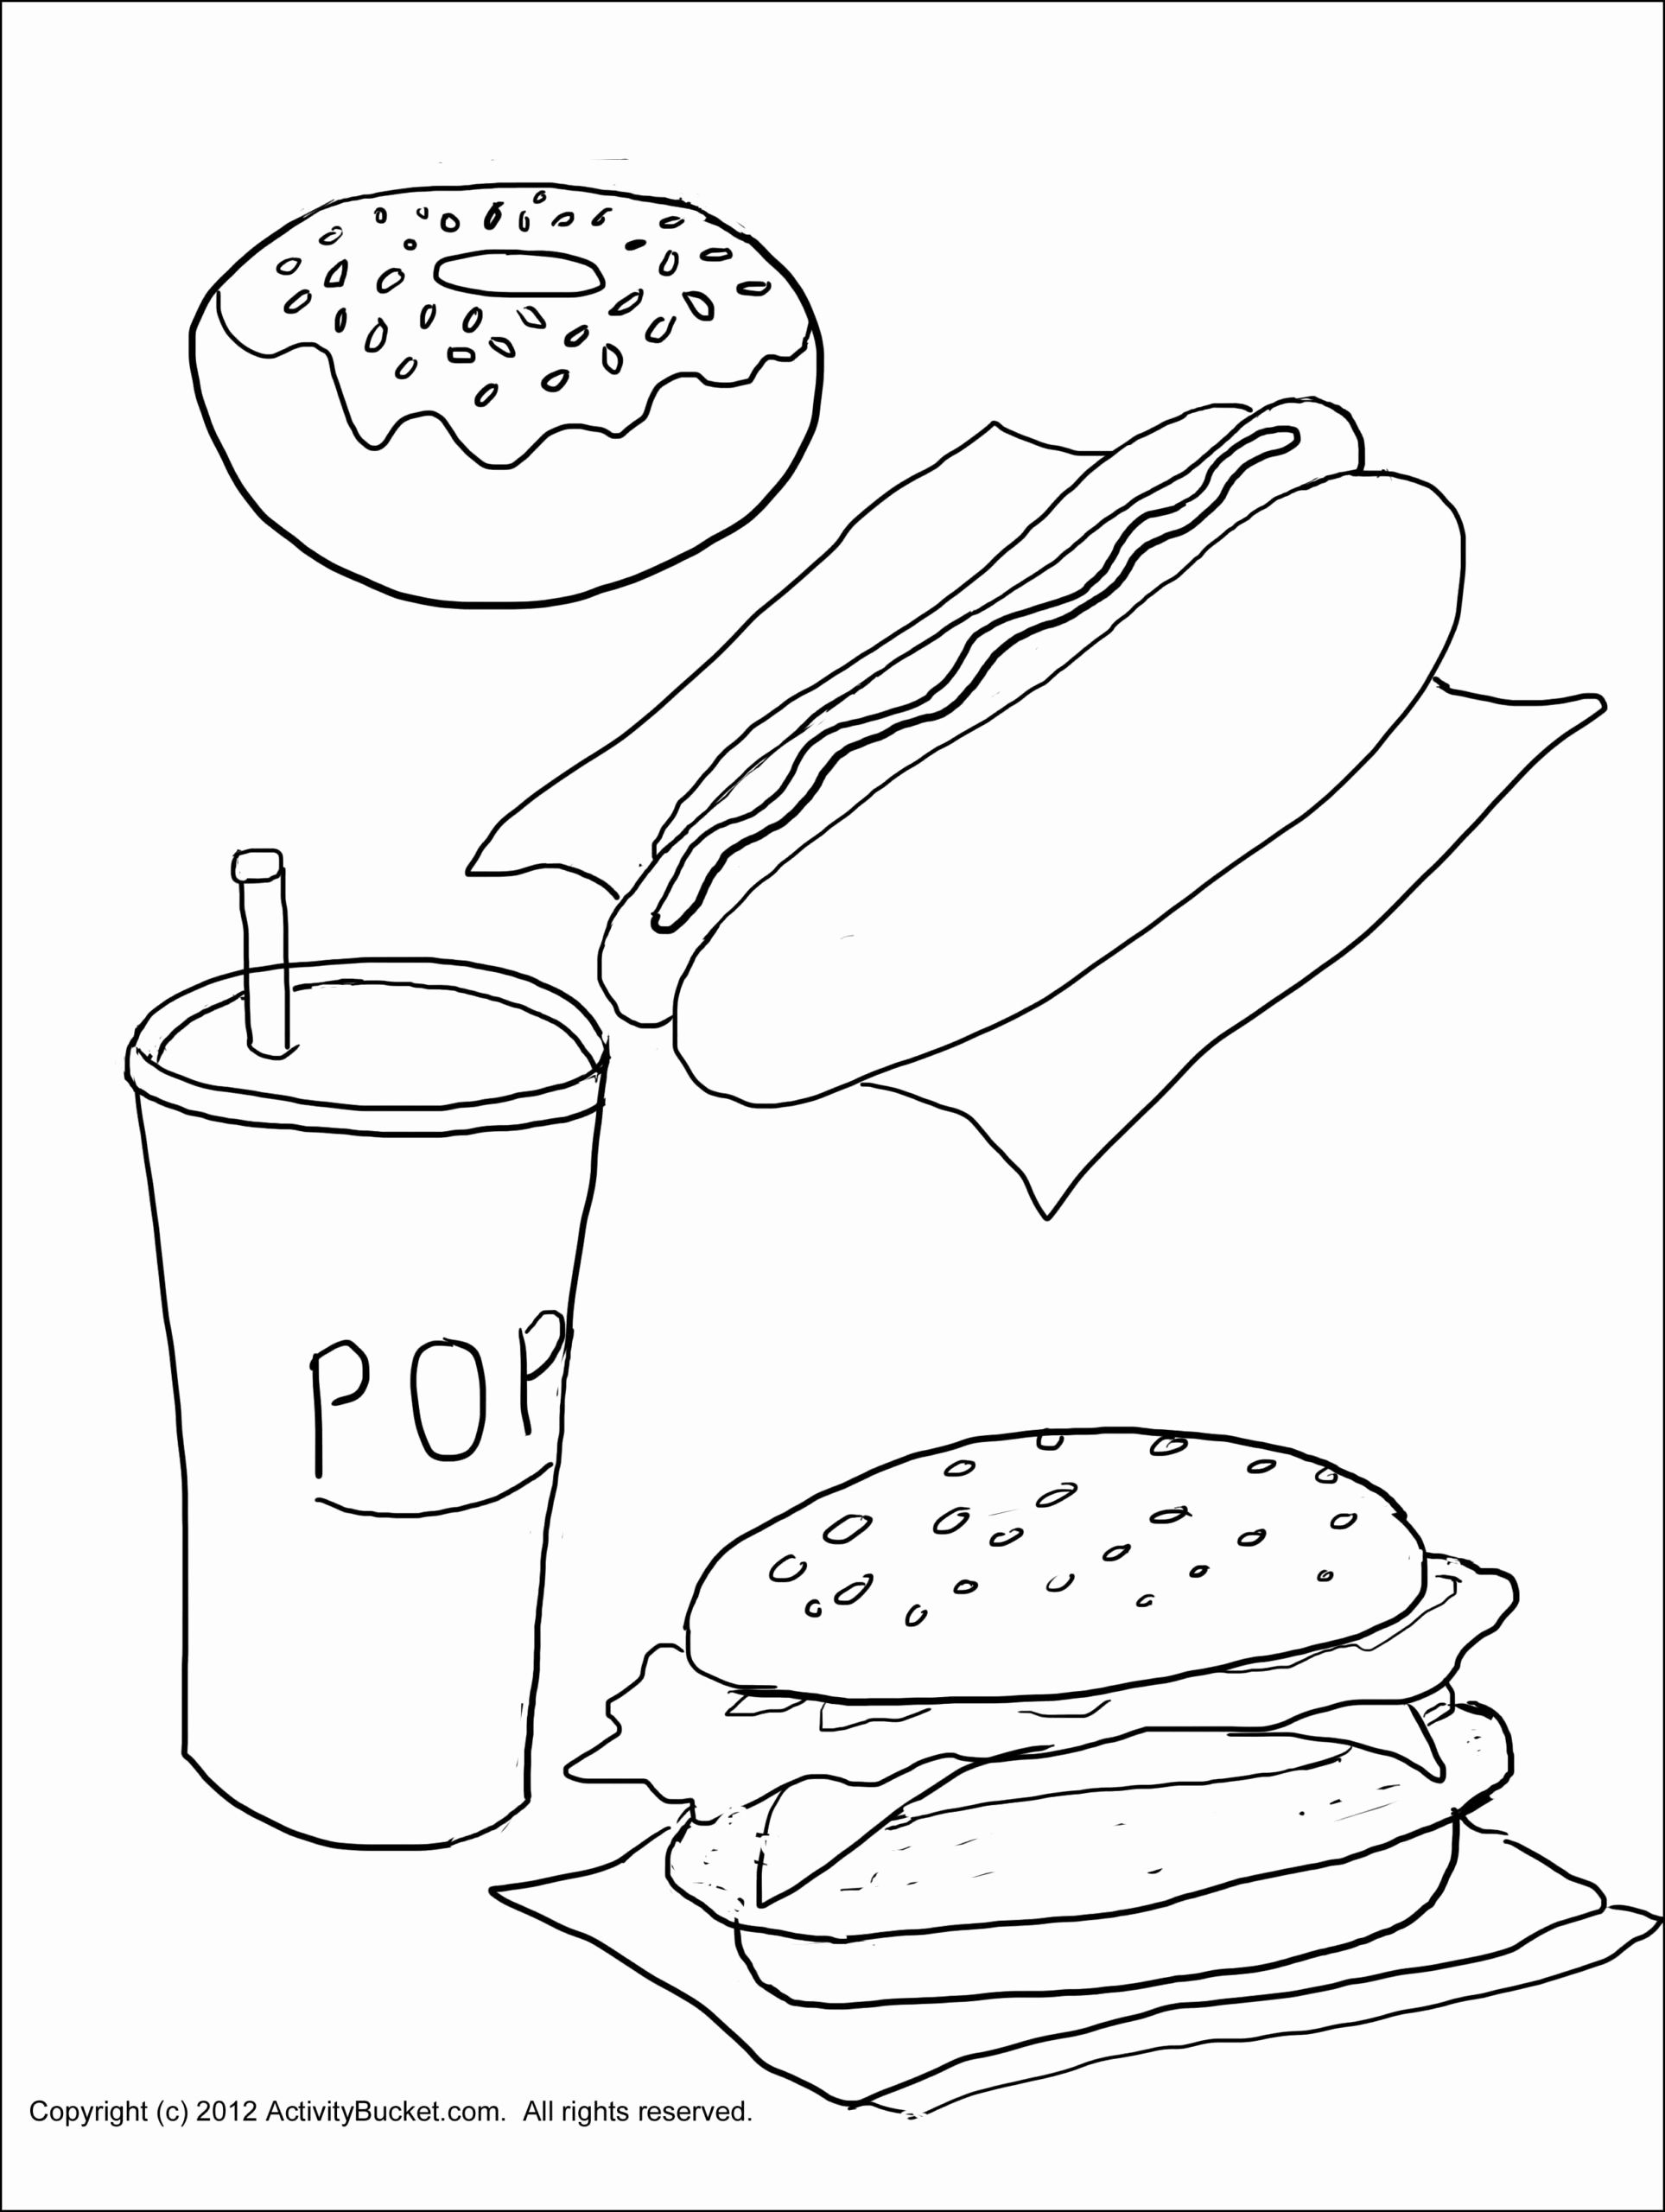 Coloring Pages Of Food For Kids Food Coloring Pages Coloring For Kids Coloring Pages For Kids